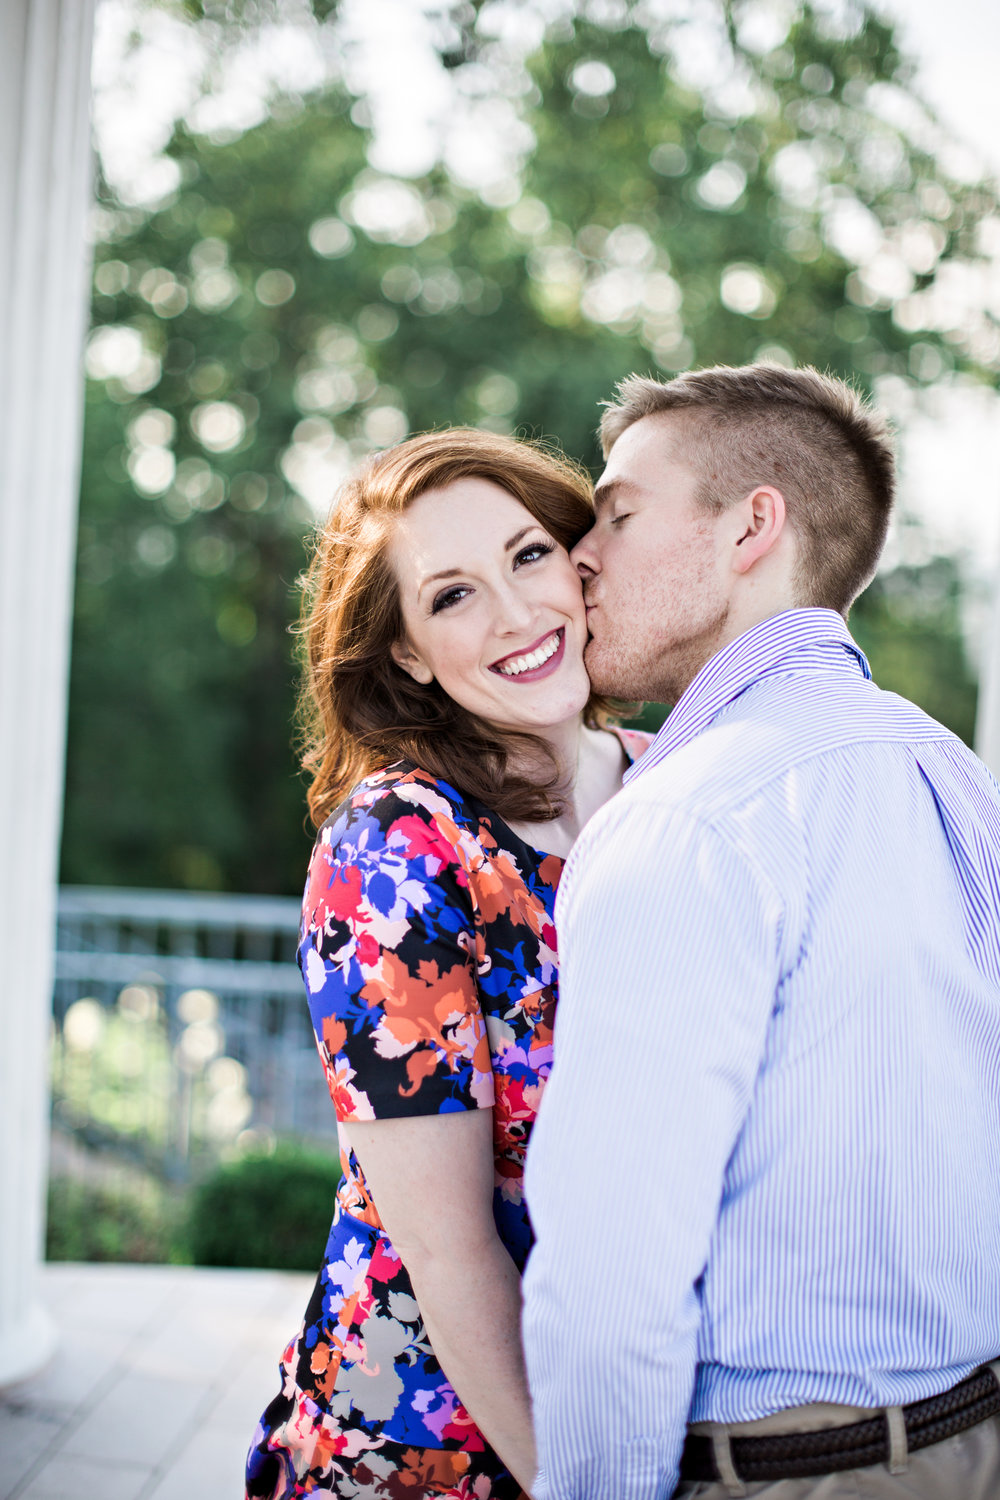 Nick-Drollette-Photography-Alabama-Engagements-Birmingham-Shelby-Logan-123.jpg